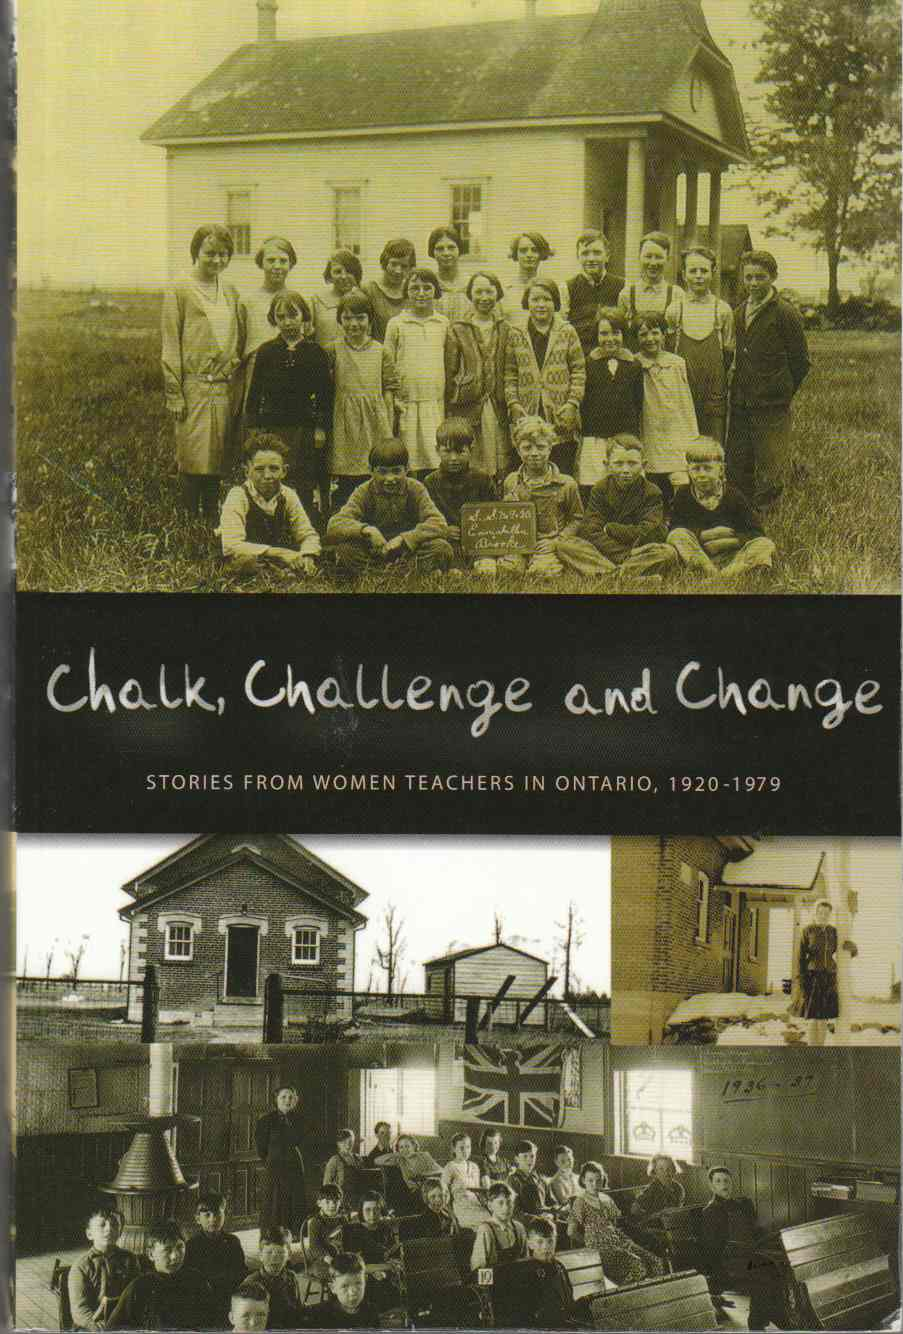 Image for Chalk, Challenge and Change Stories from Women Teachers in Ontario, 1920-1979